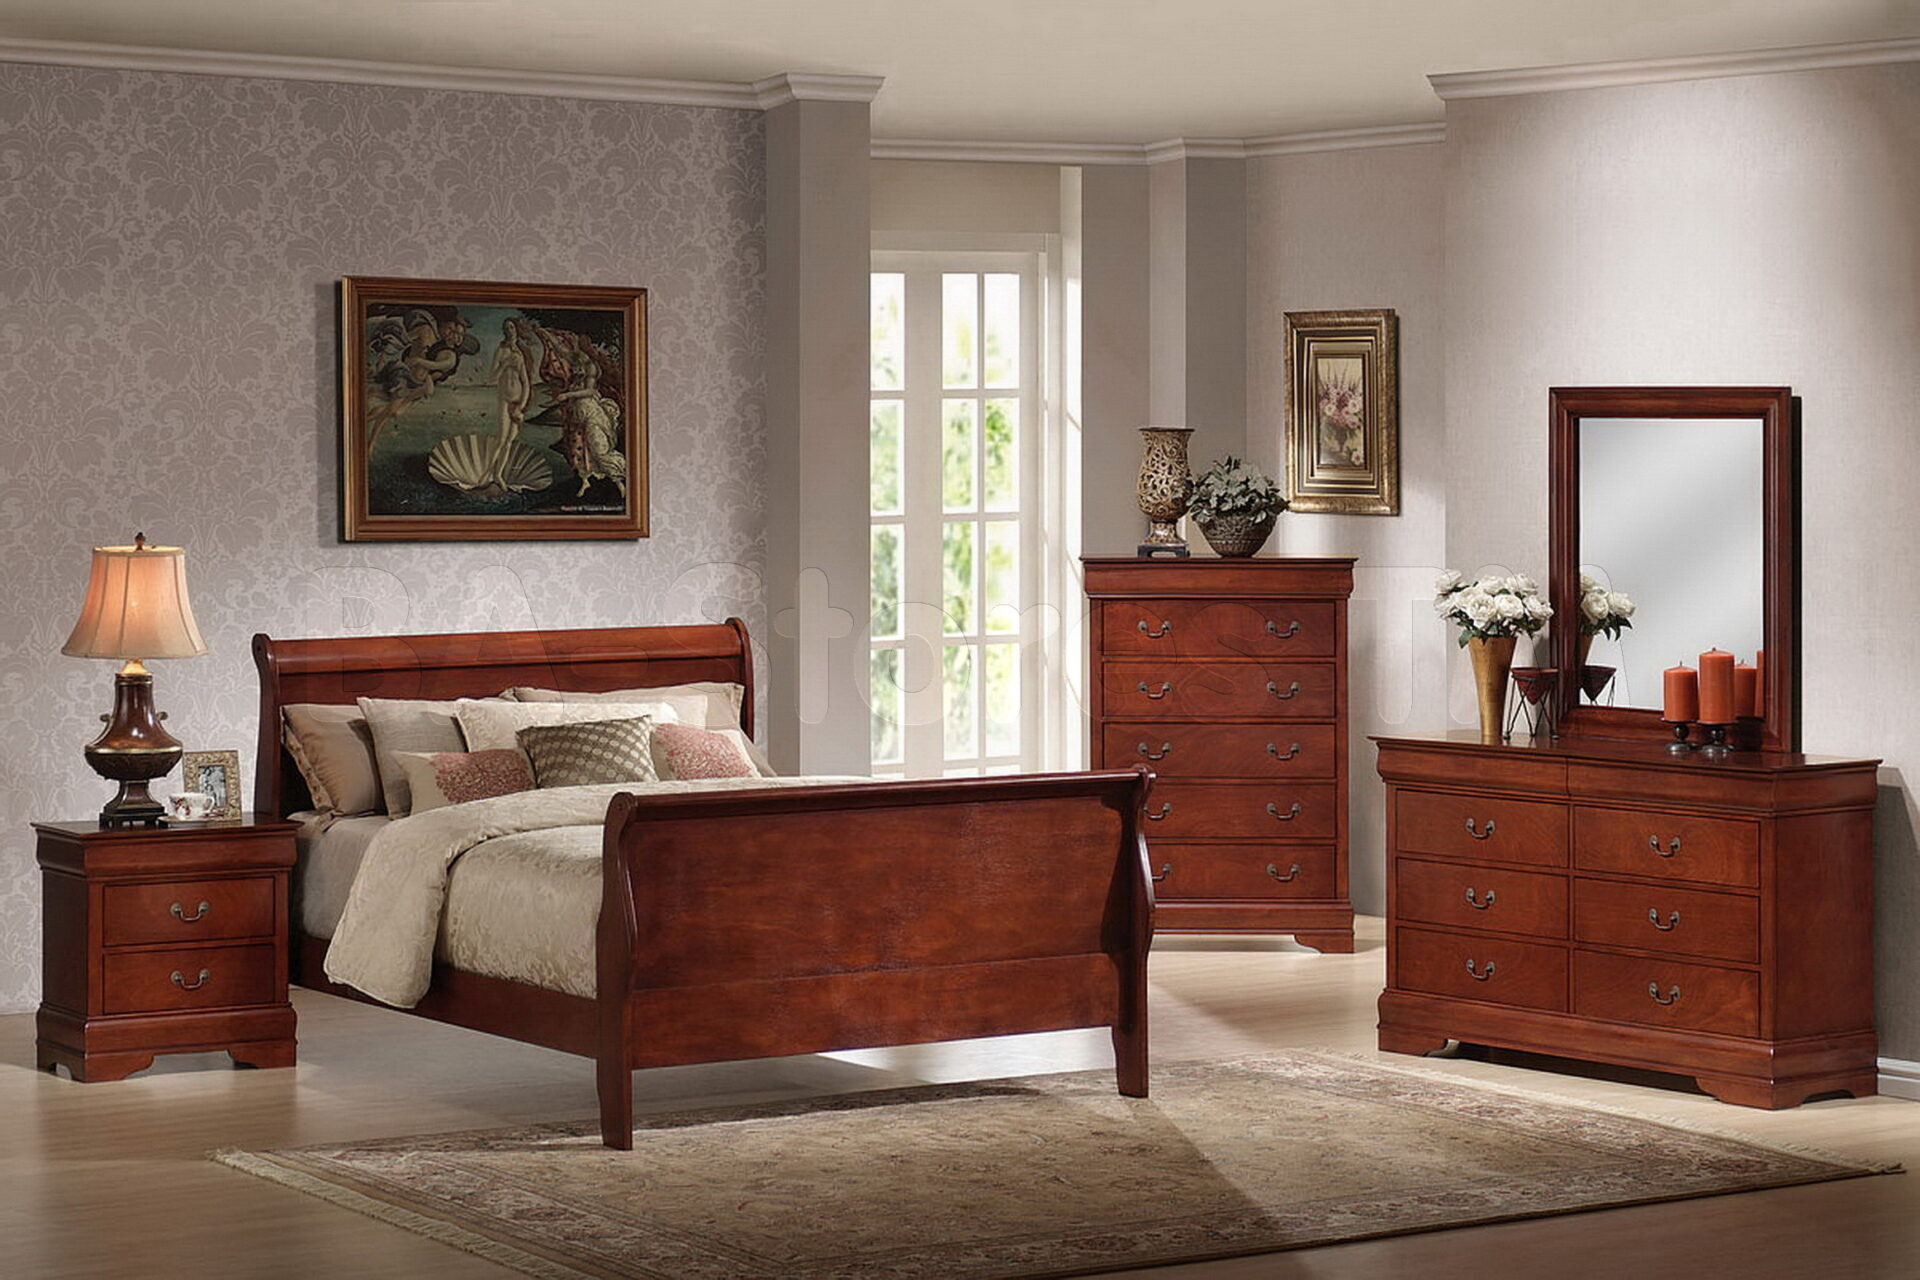 cherry wood furniture bedroom decor ideas